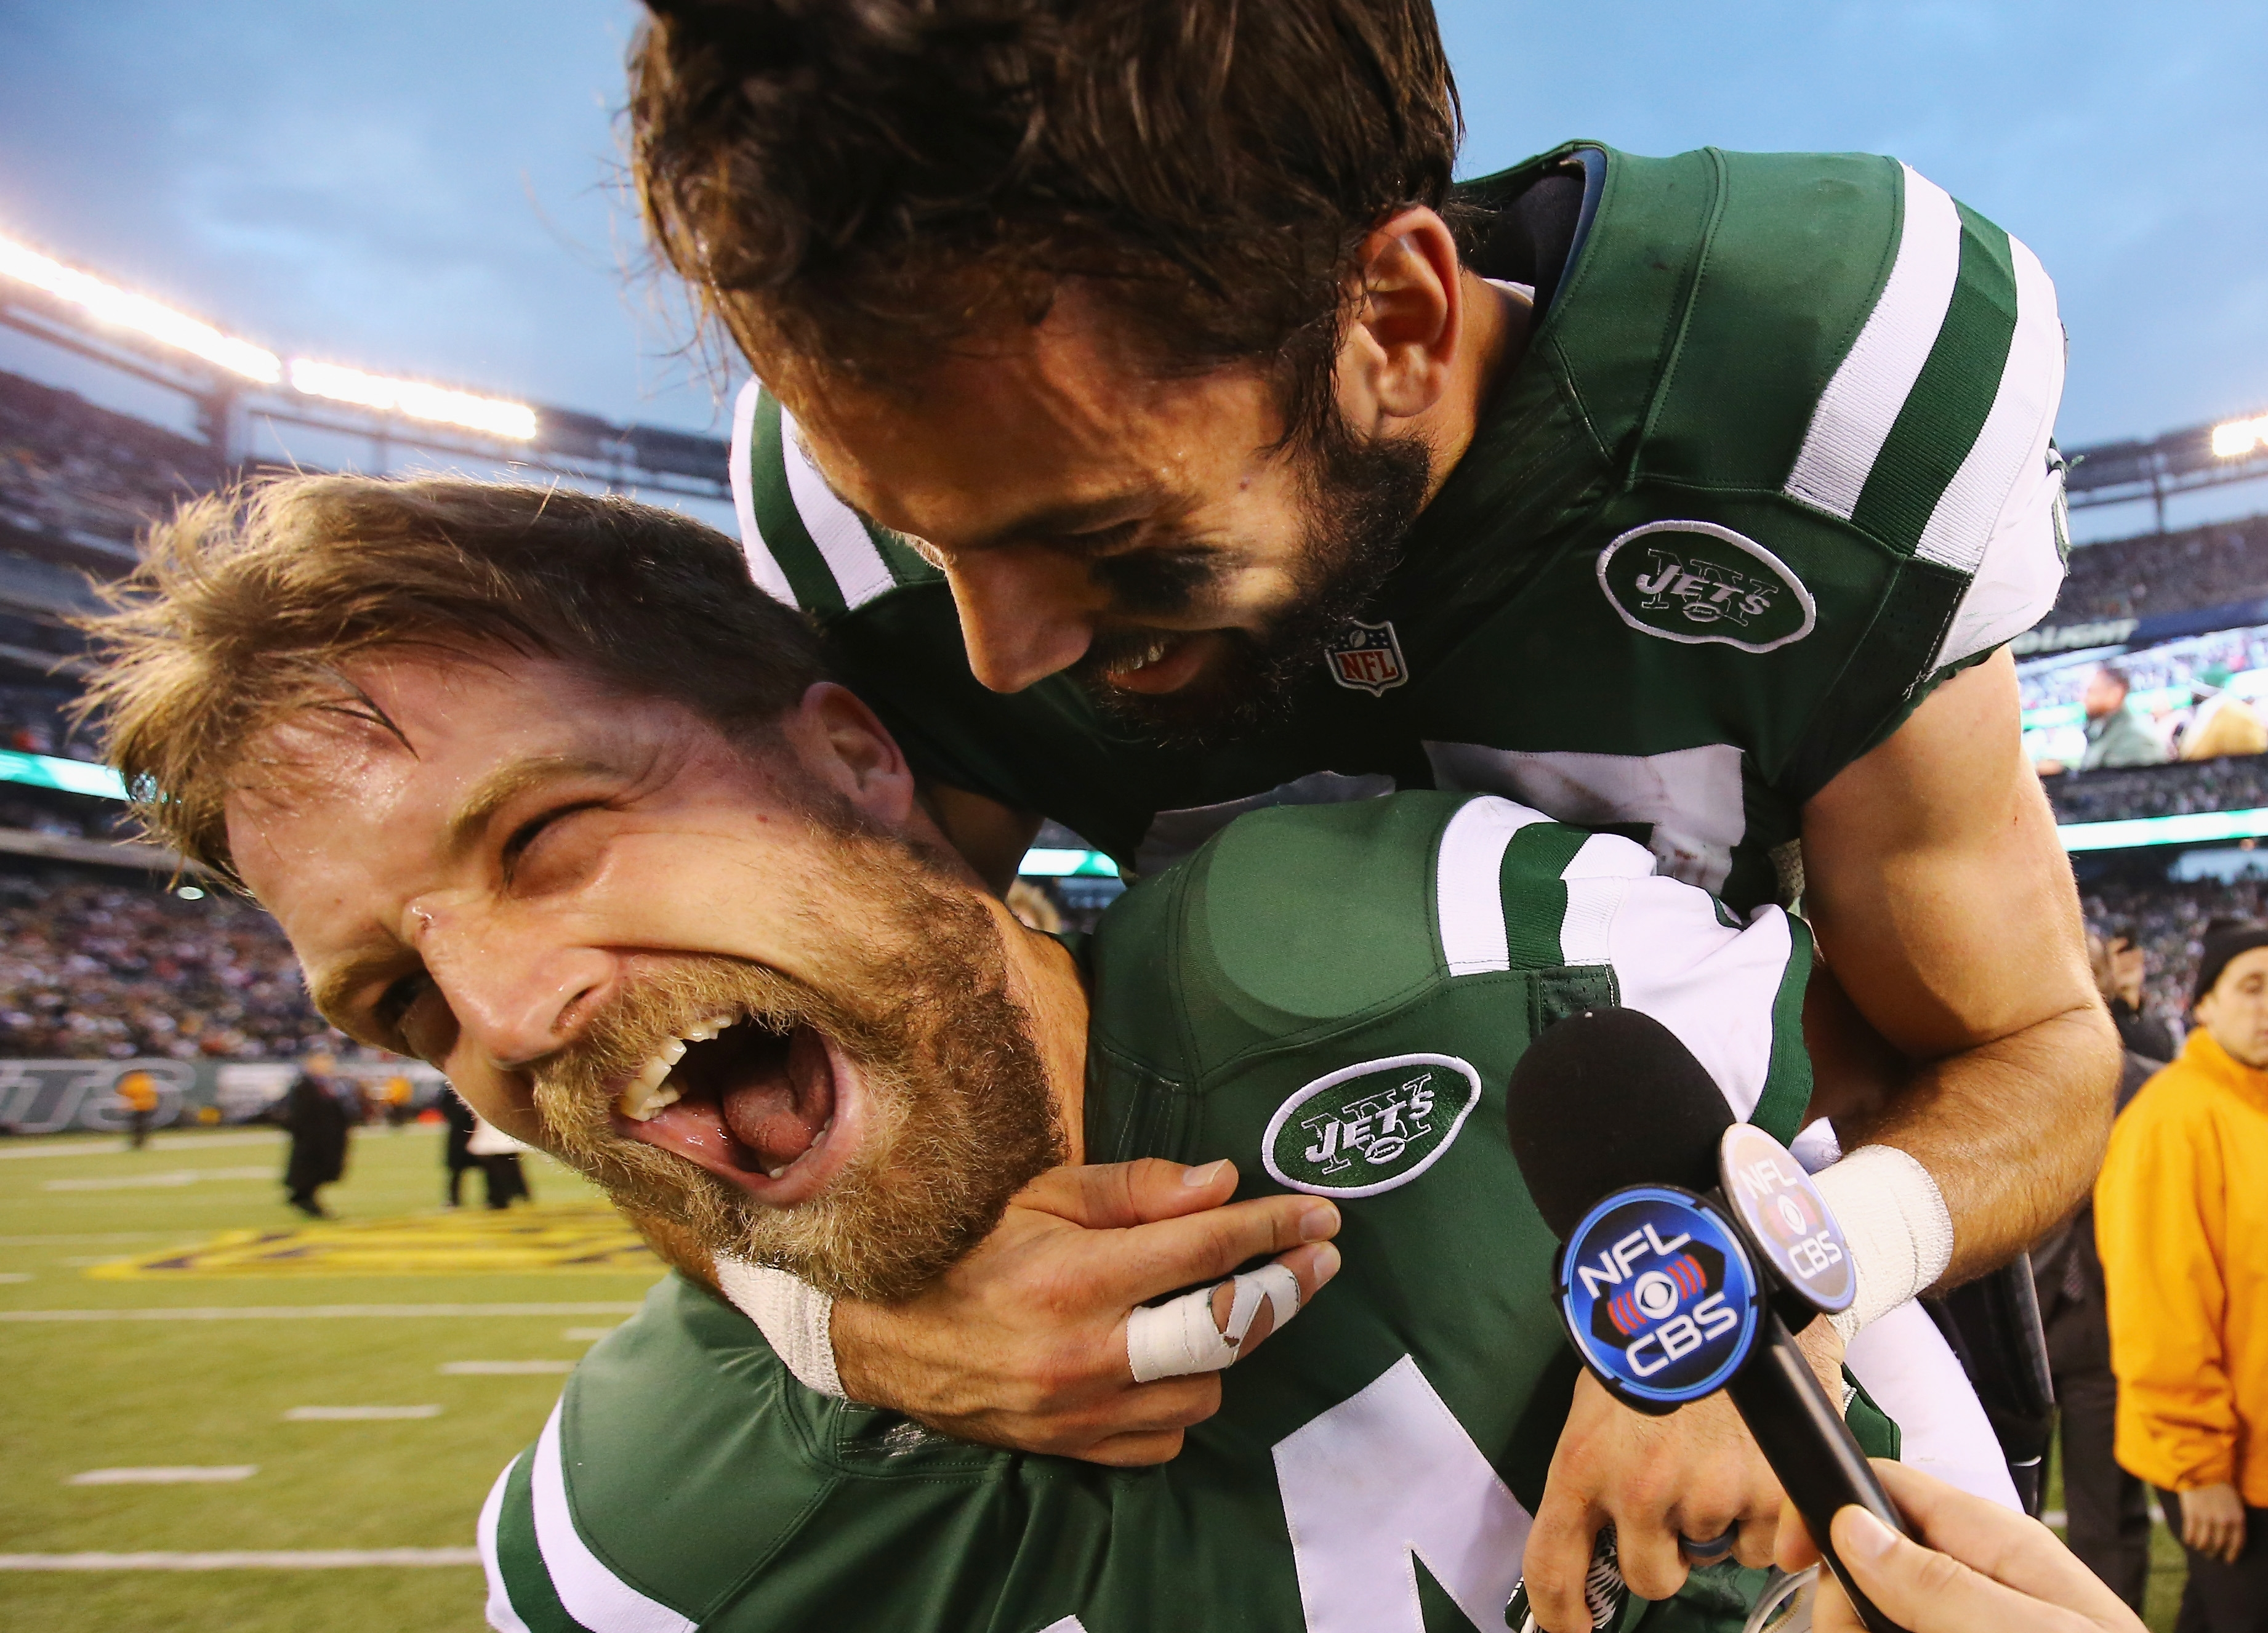 Jets quarterback Ryan Fitzpatrick, bottom, celebrates with receiver Eric Decker after defeating the New England Patriots in overtime on Sunday, setting up a high-stakes game in Orchard Park next week. (Al Bello/Getty Images)